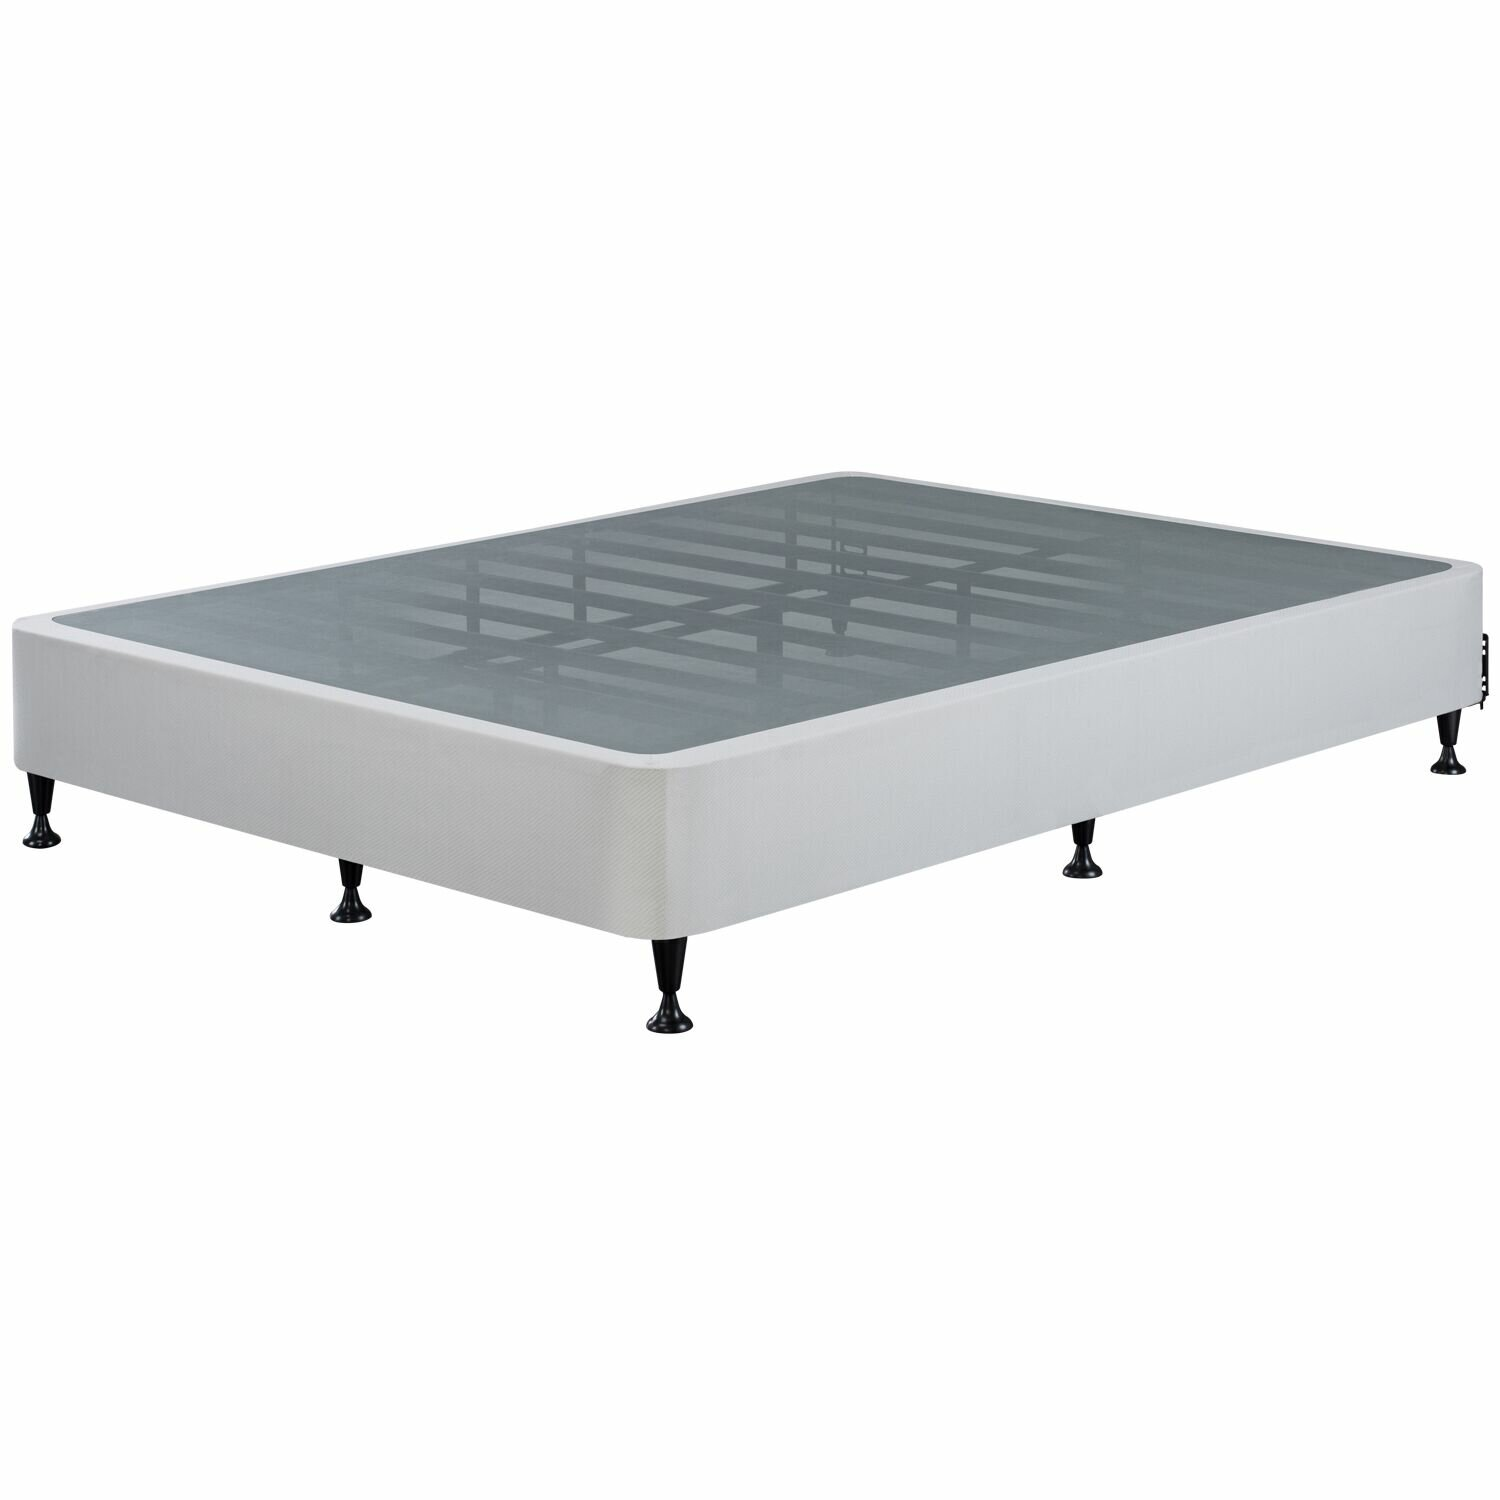 Orthotherapy Standing Smart 14 Box Spring Reviews Wayfair